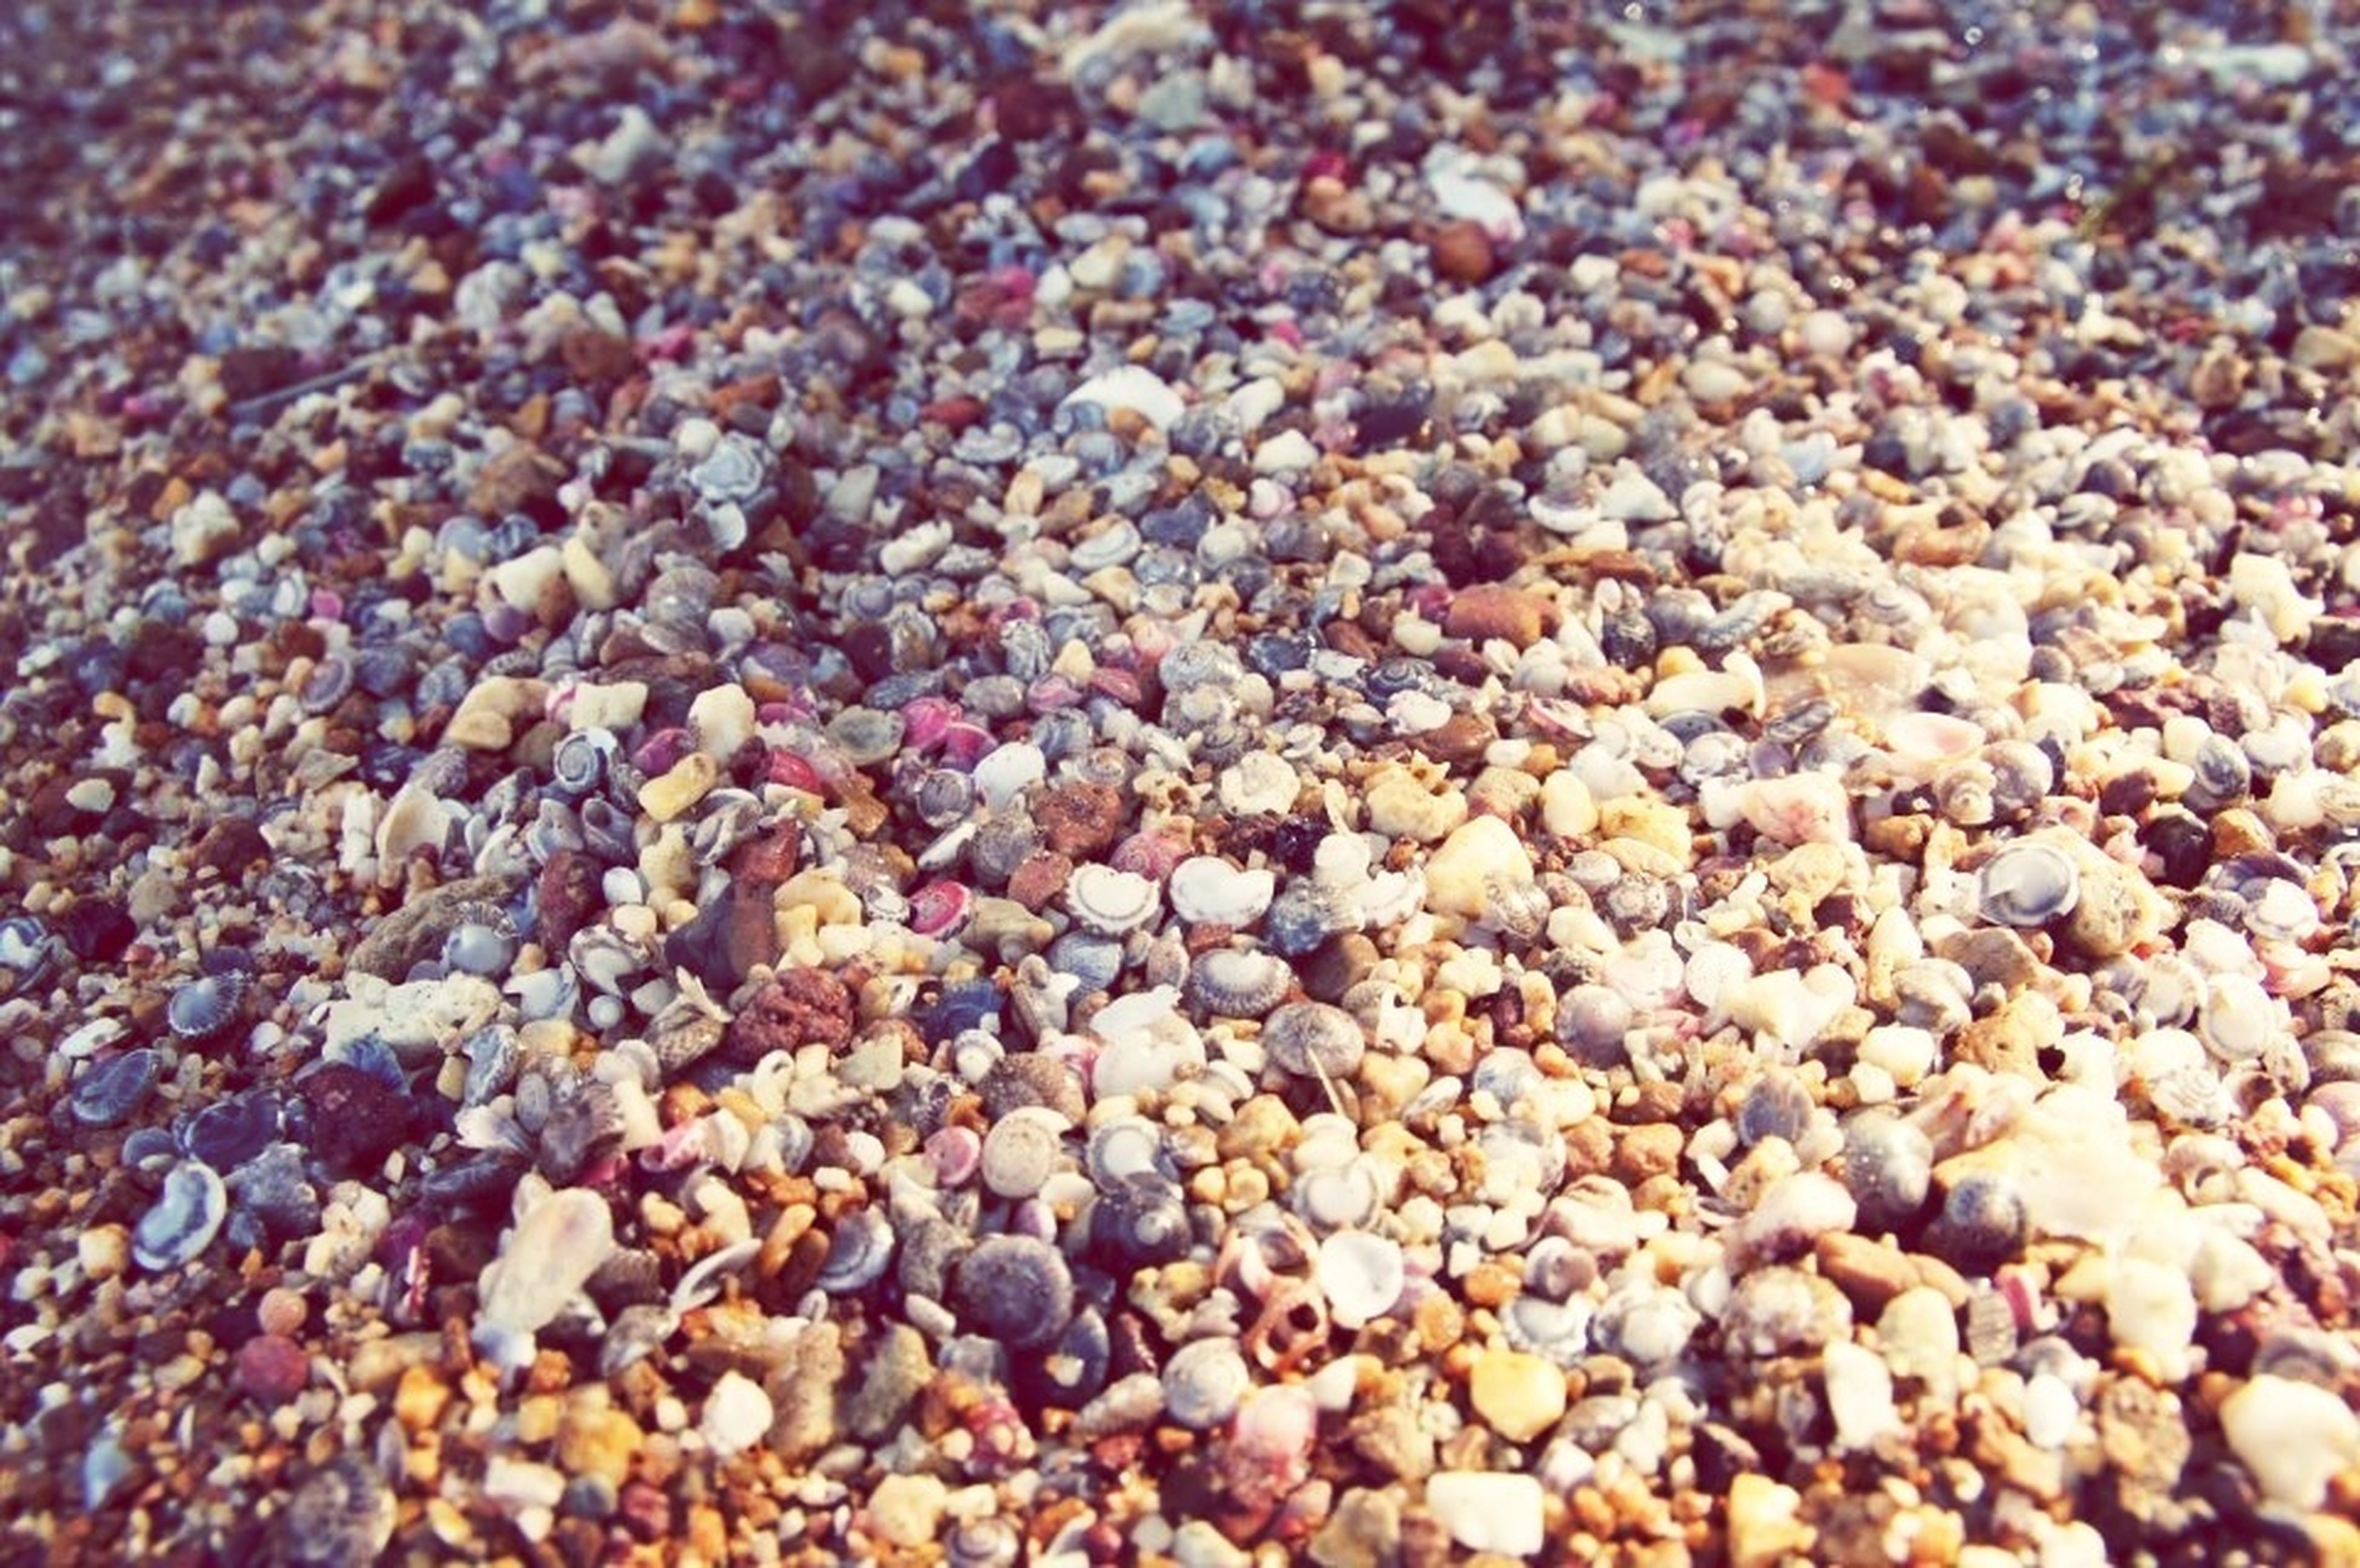 full frame, abundance, backgrounds, high angle view, pebble, beach, nature, stone - object, day, outdoors, large group of objects, sand, no people, selective focus, tranquility, close-up, beauty in nature, dry, textured, field